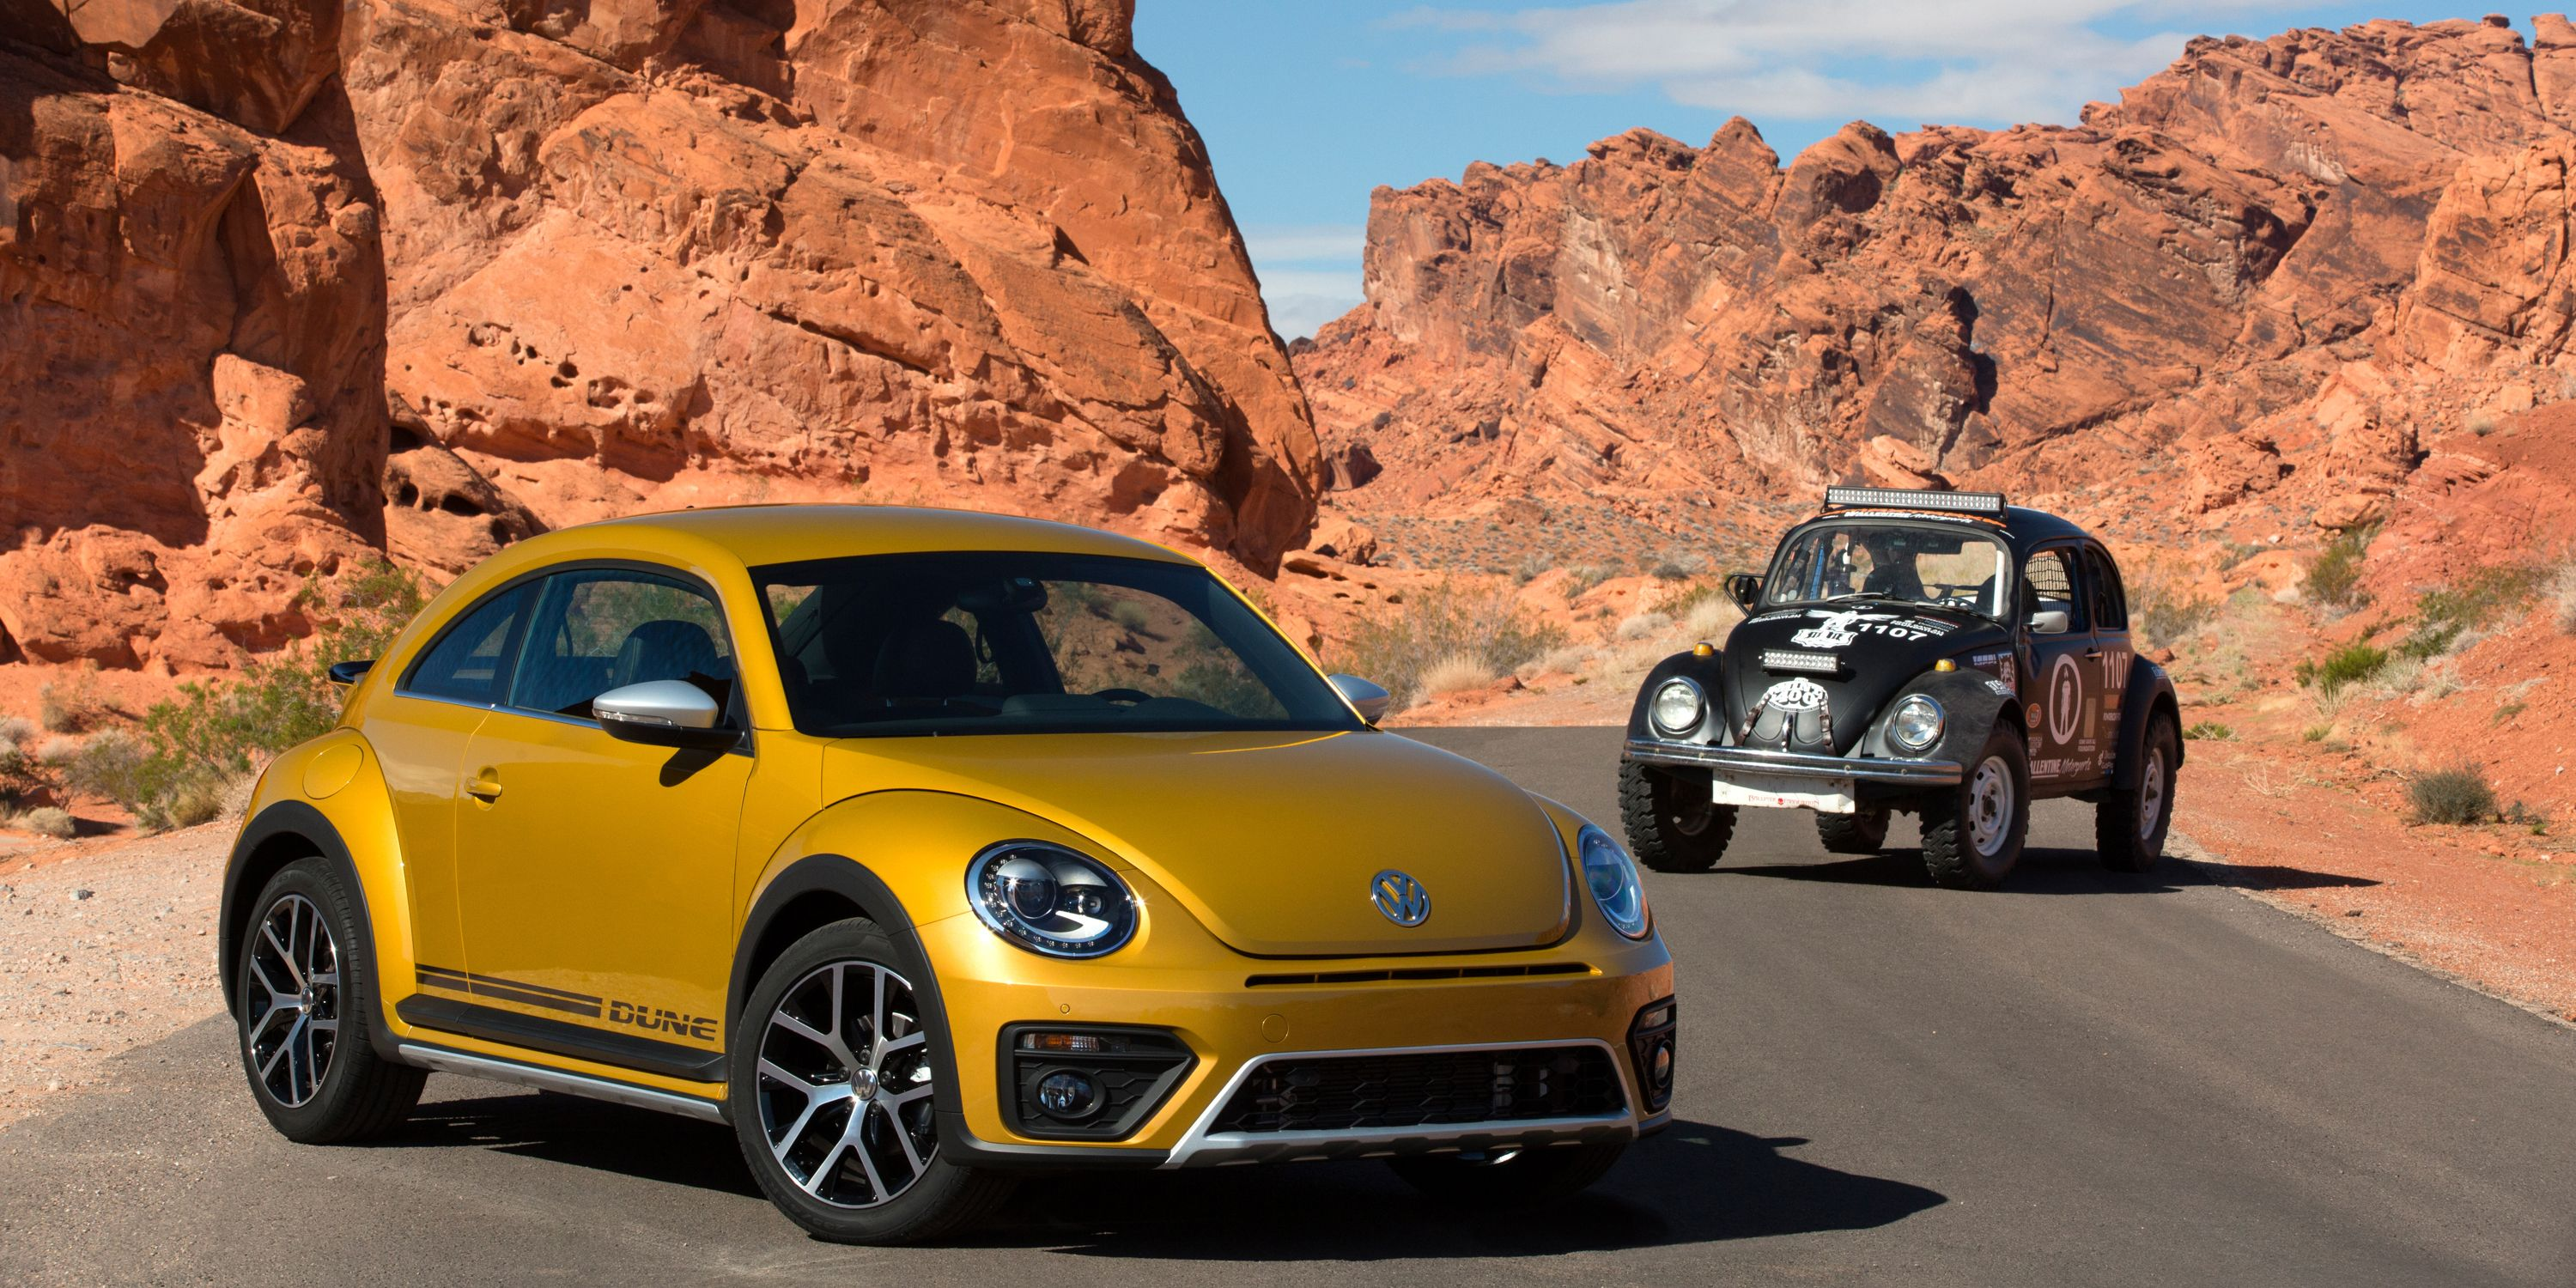 The Dune Is Funky Vw Beetle Variant We Ve Been Waiting For